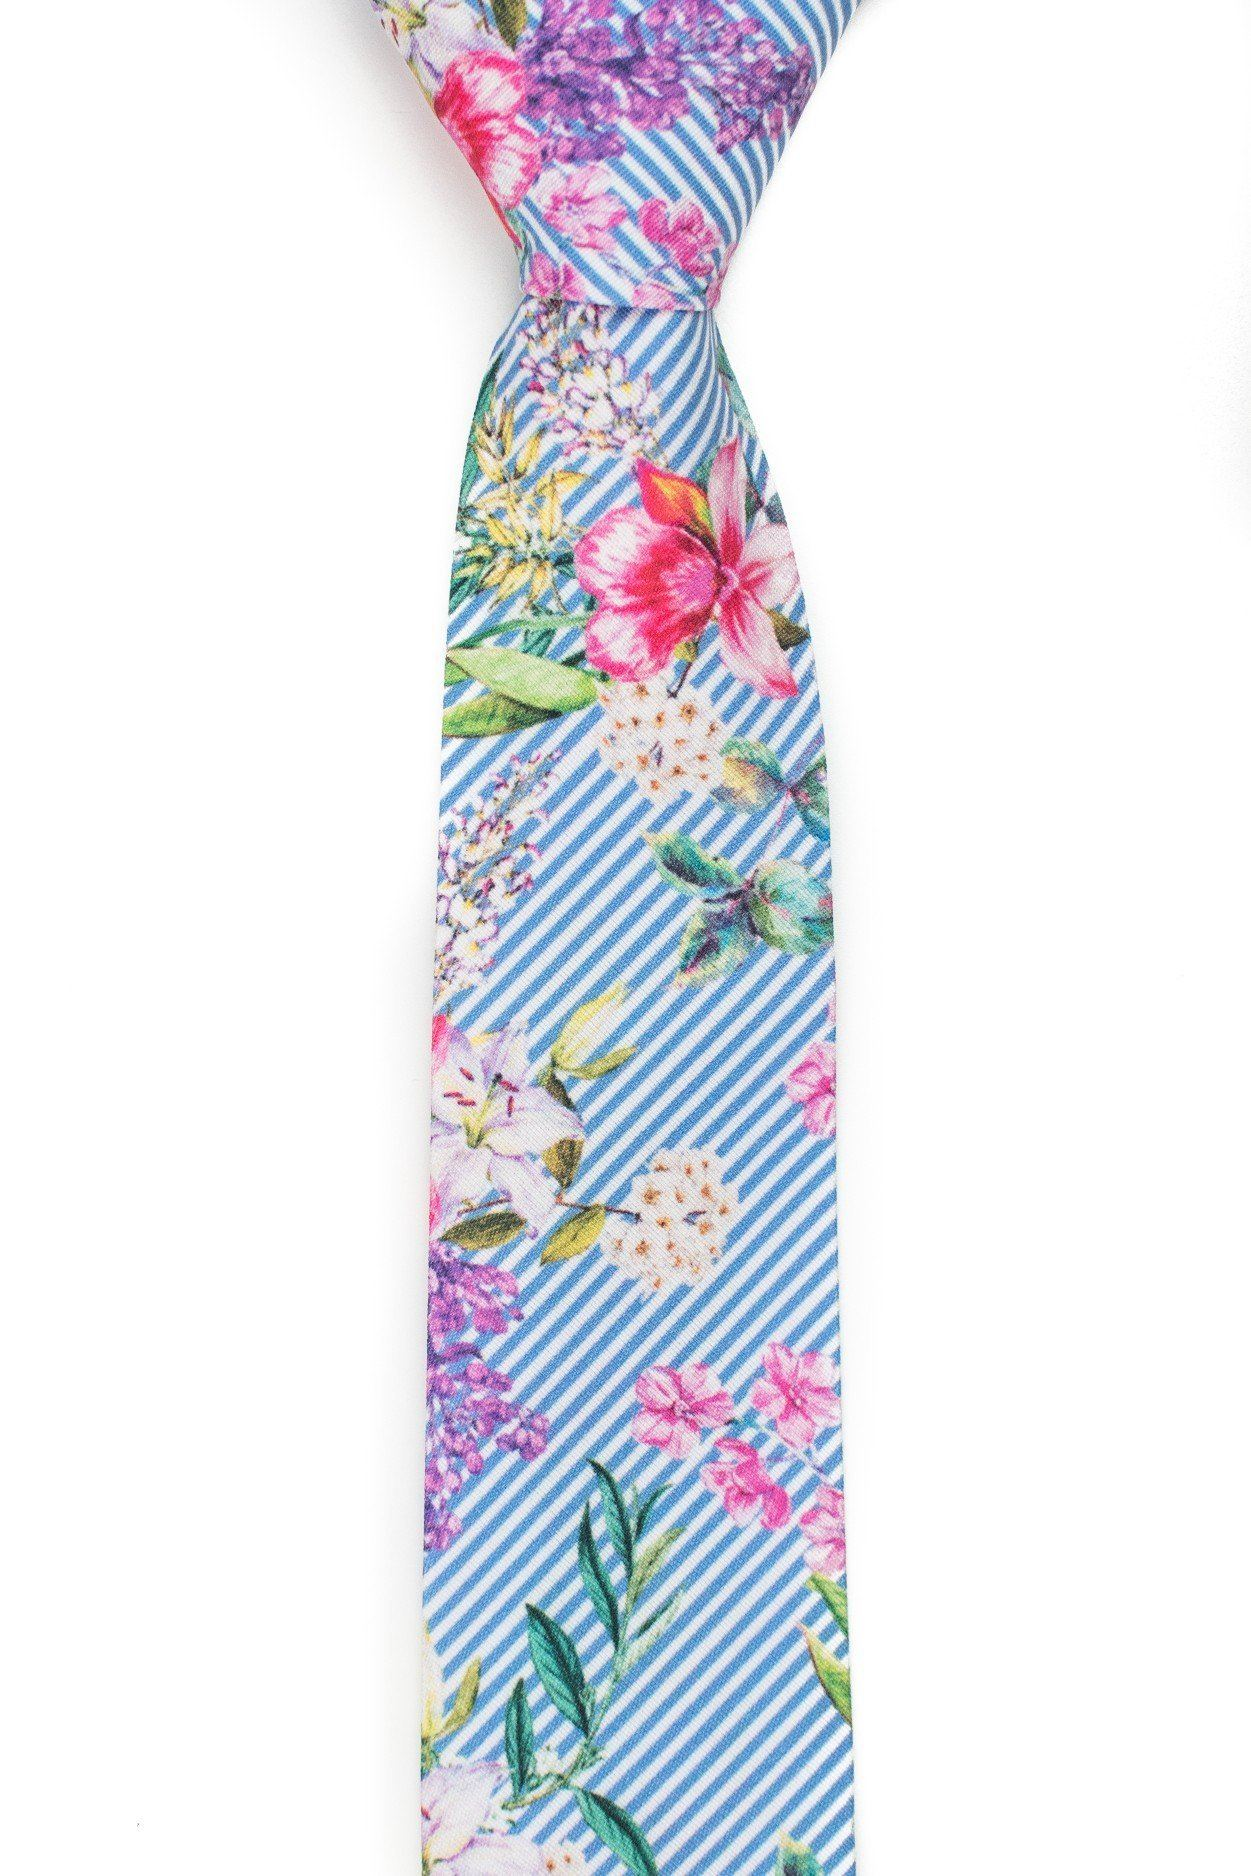 Pacific - Striped Floral Tropical Tie